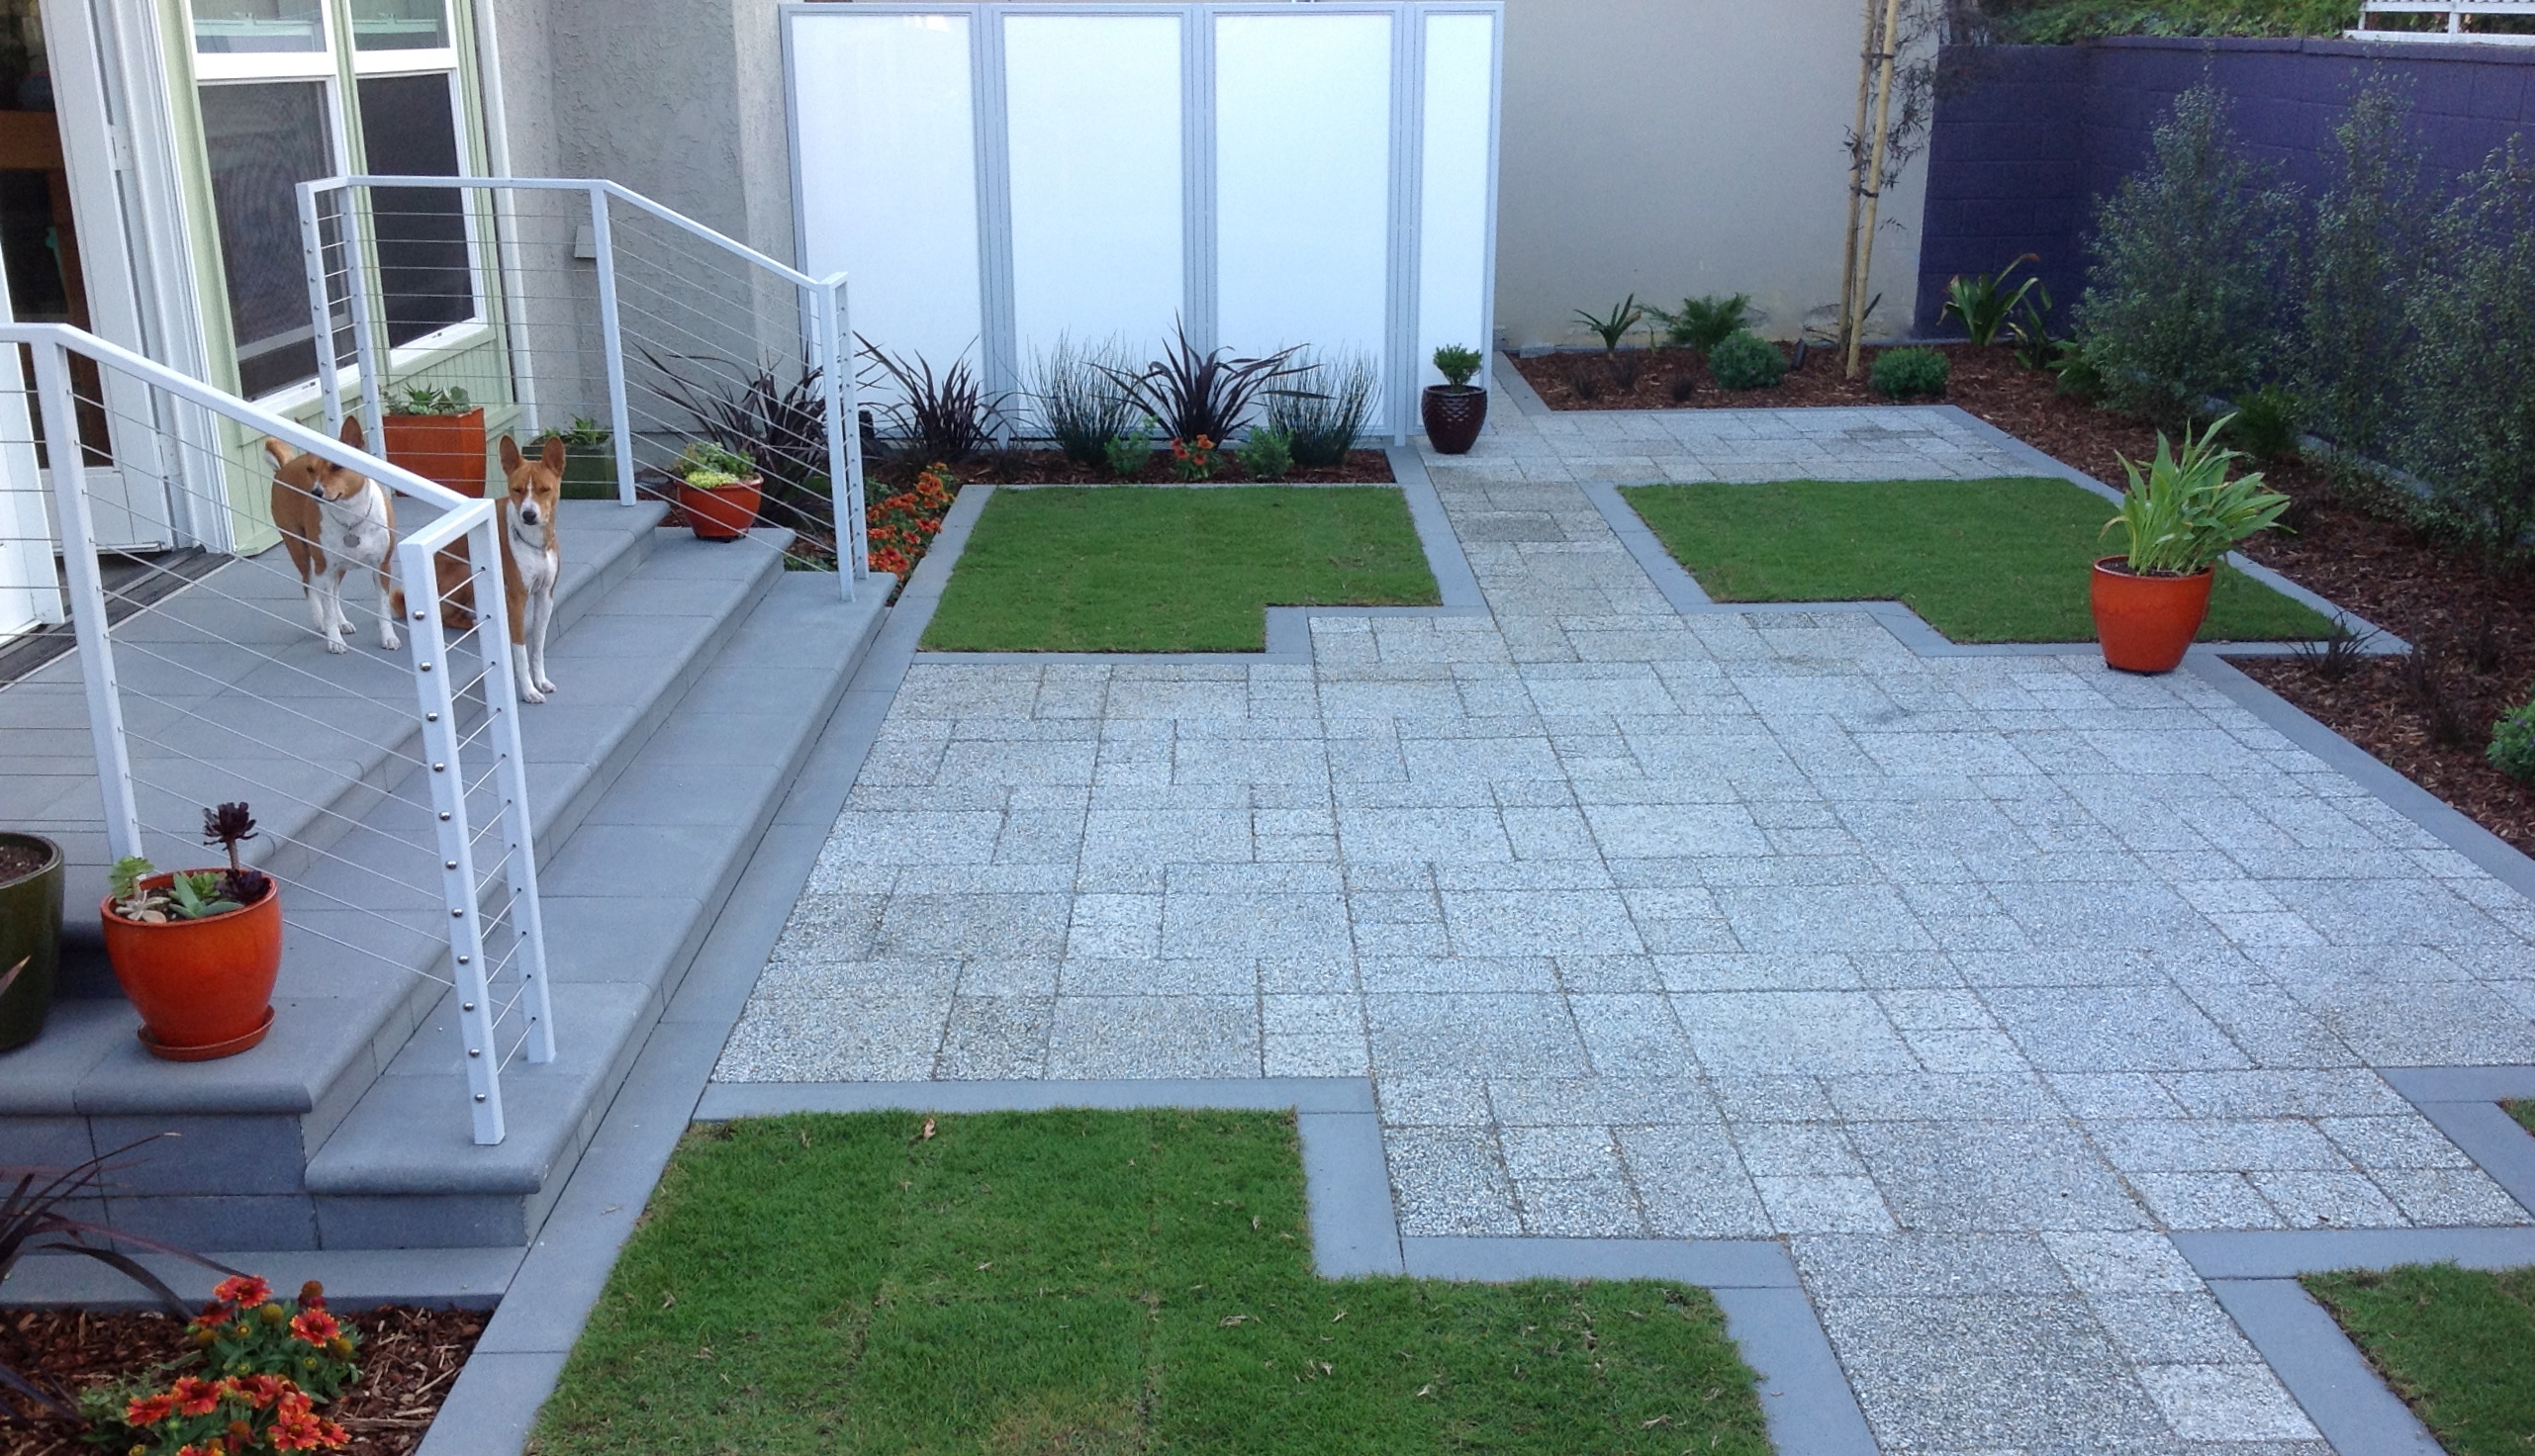 Patio of pervious concrete pavers hugged by 'area rugs' of turf grass